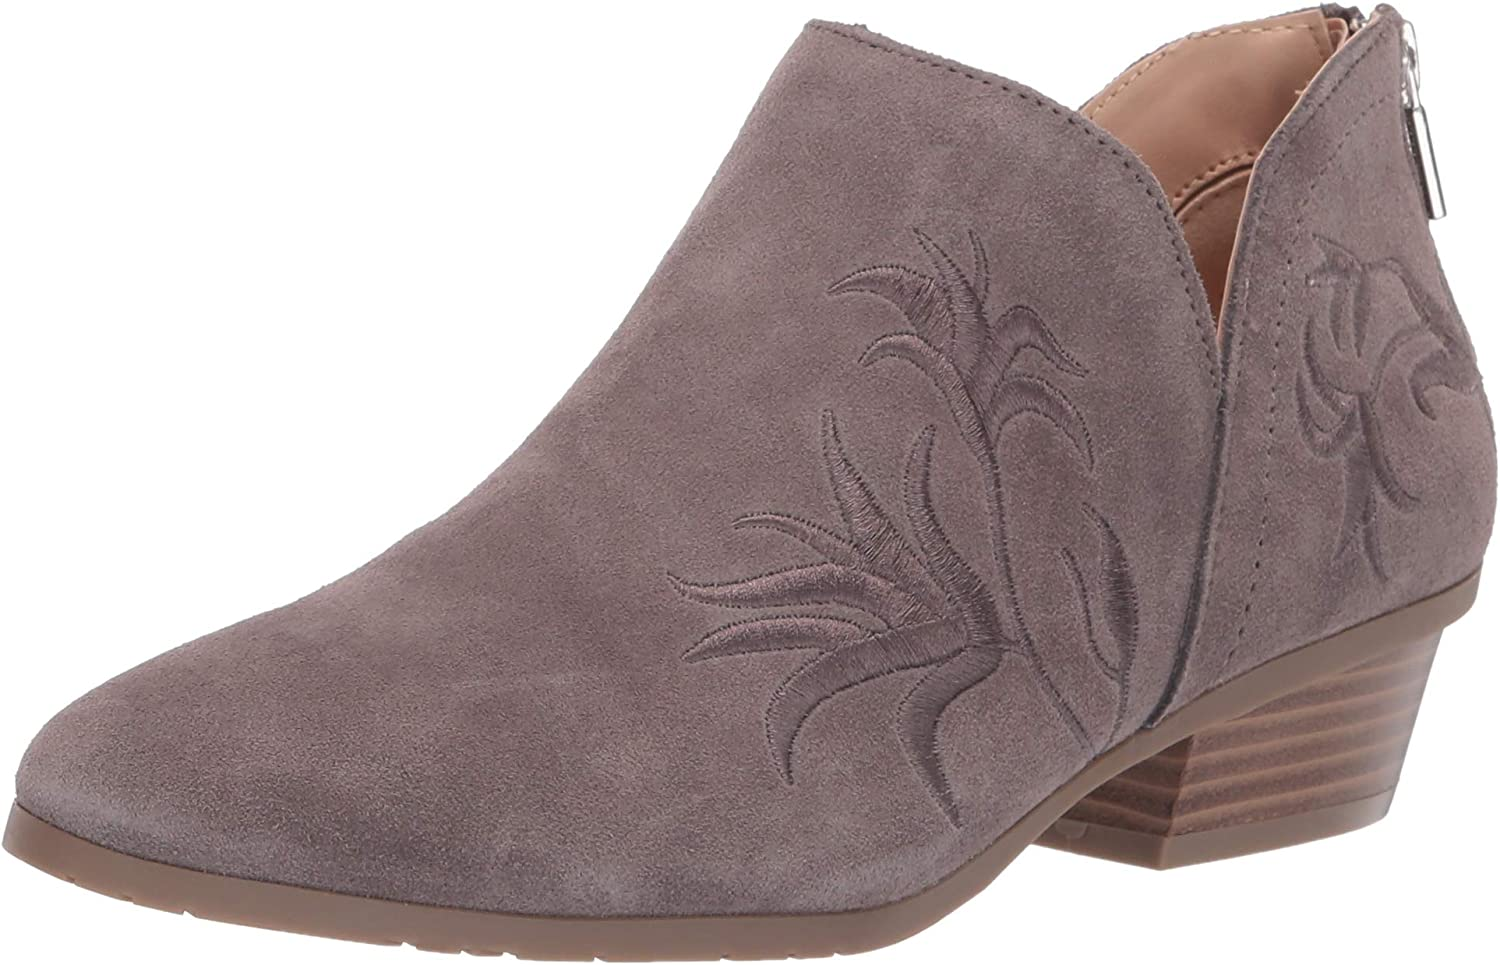 Kenneth Cole REACTION Womens Side Gig Tonal Embroidered Ankle Bootie Boot